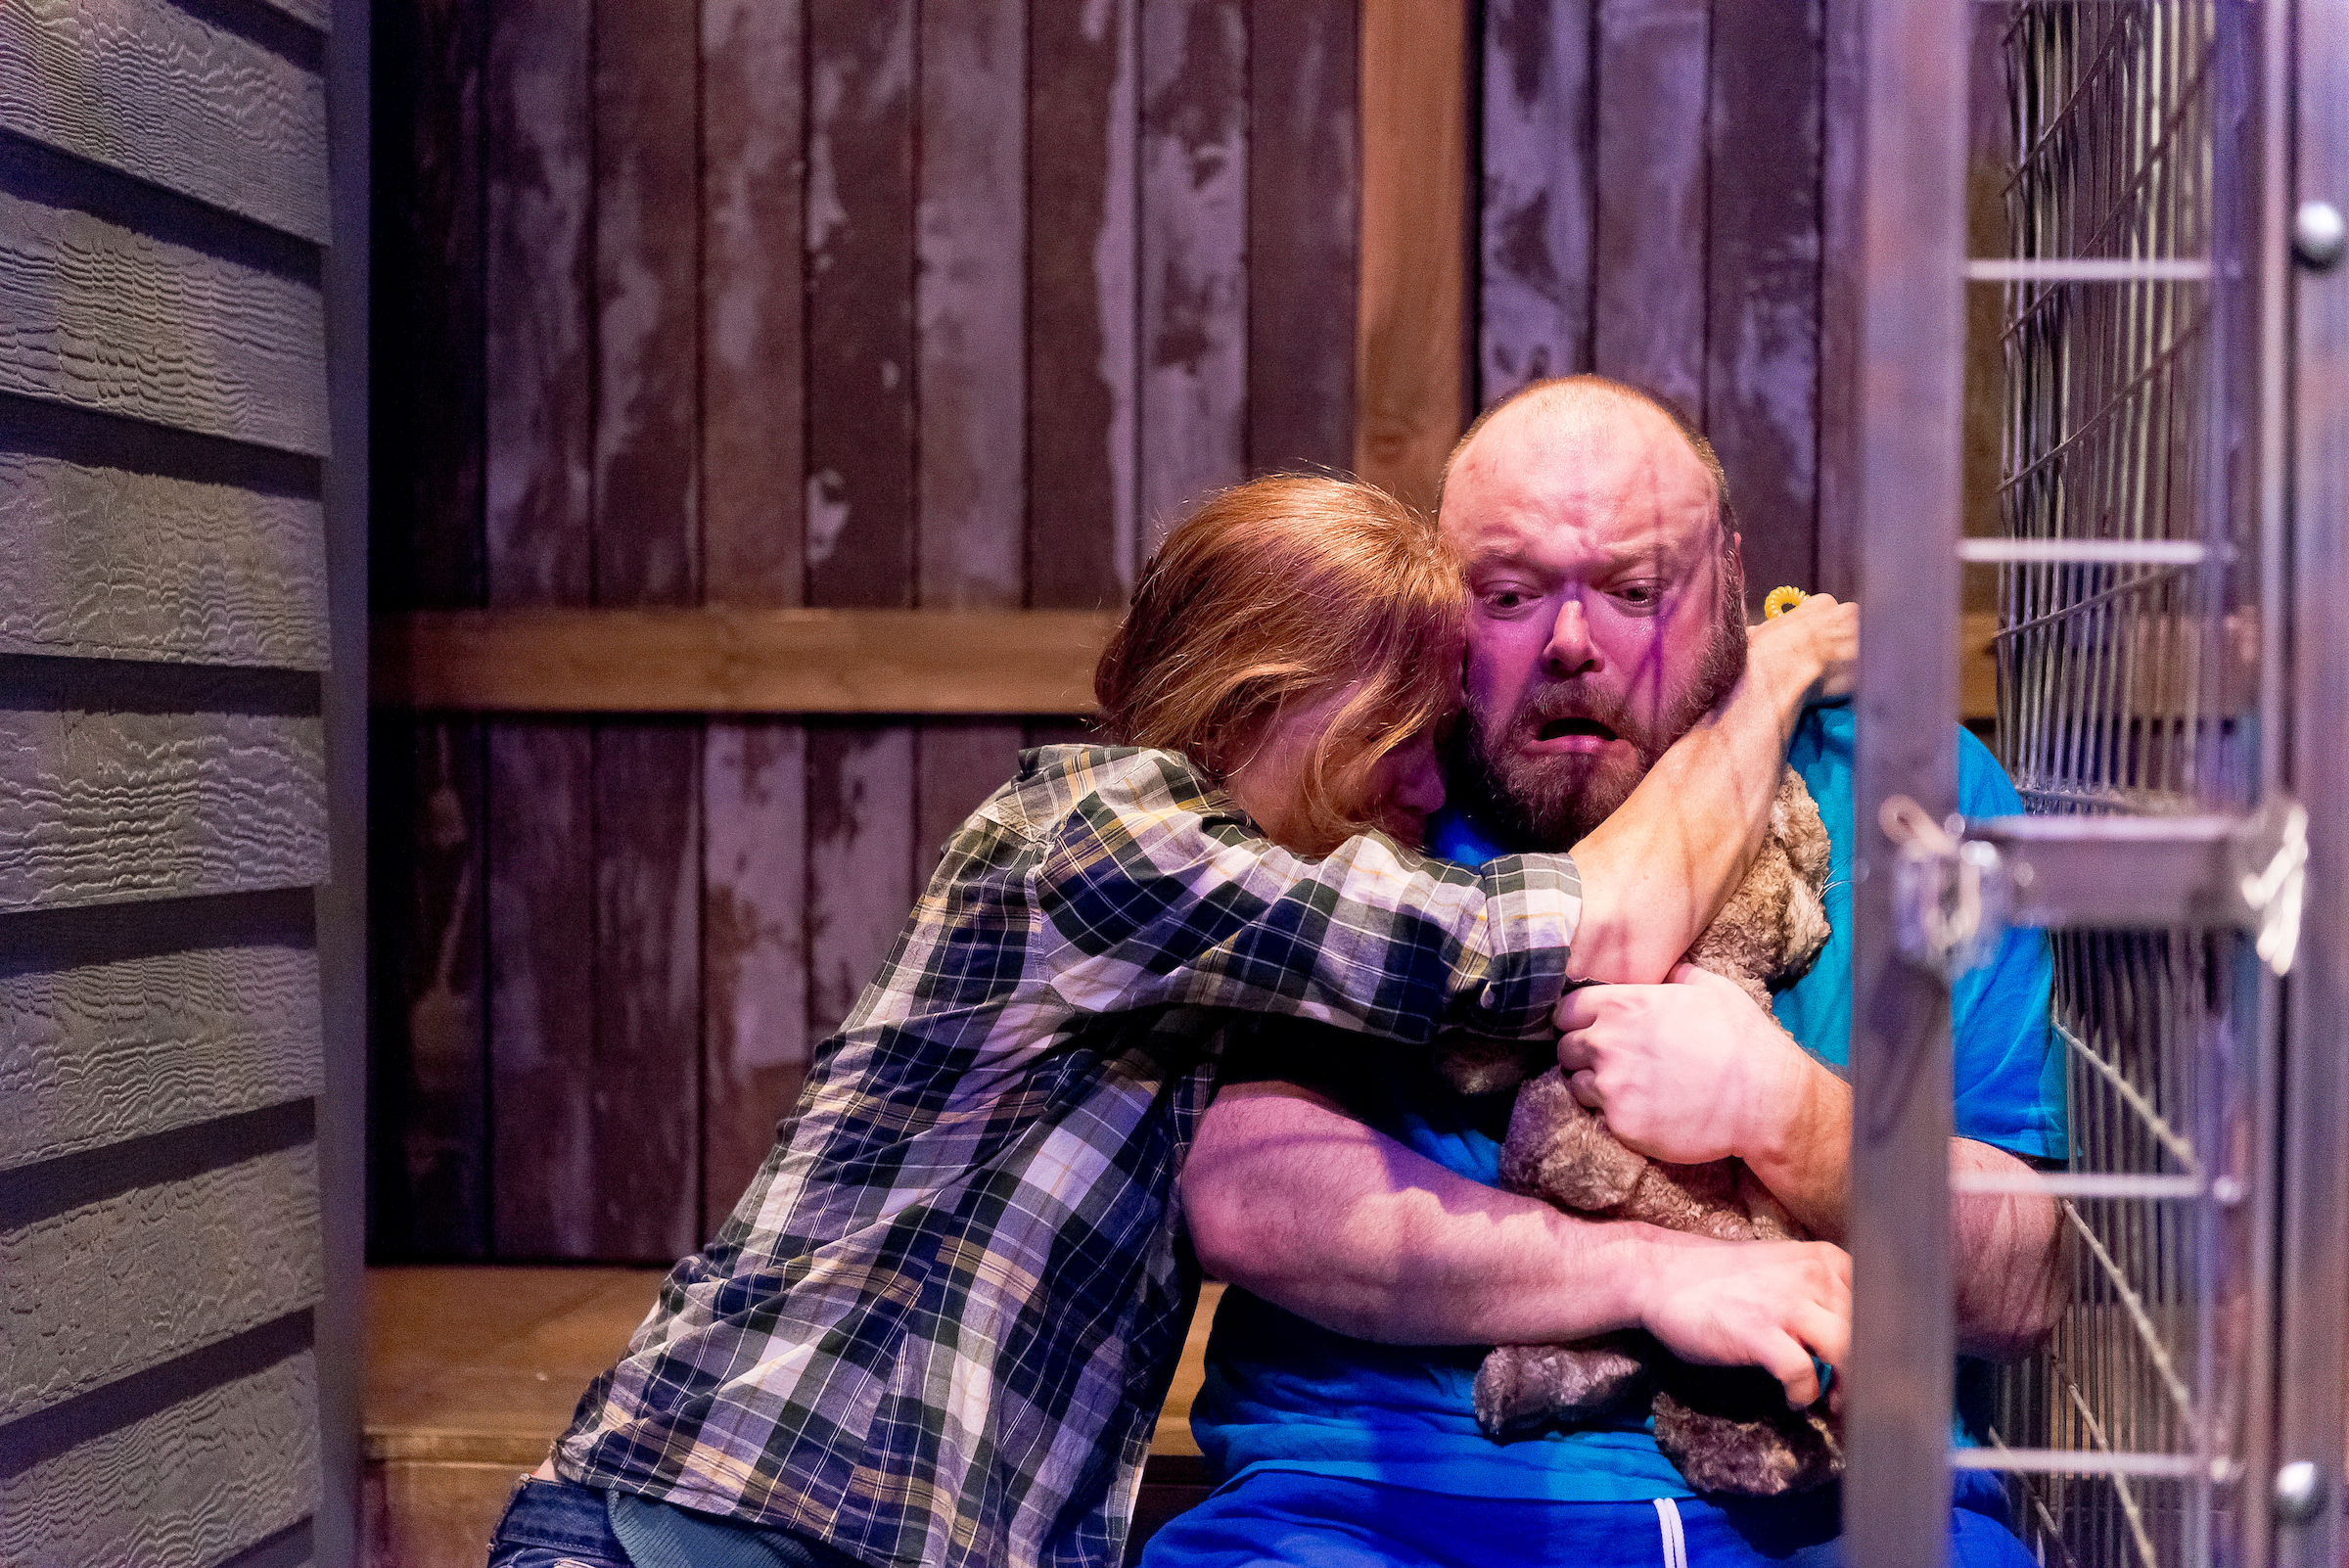 BWW Review: TREVOR Monkeys Around at Catastrophic Theatre